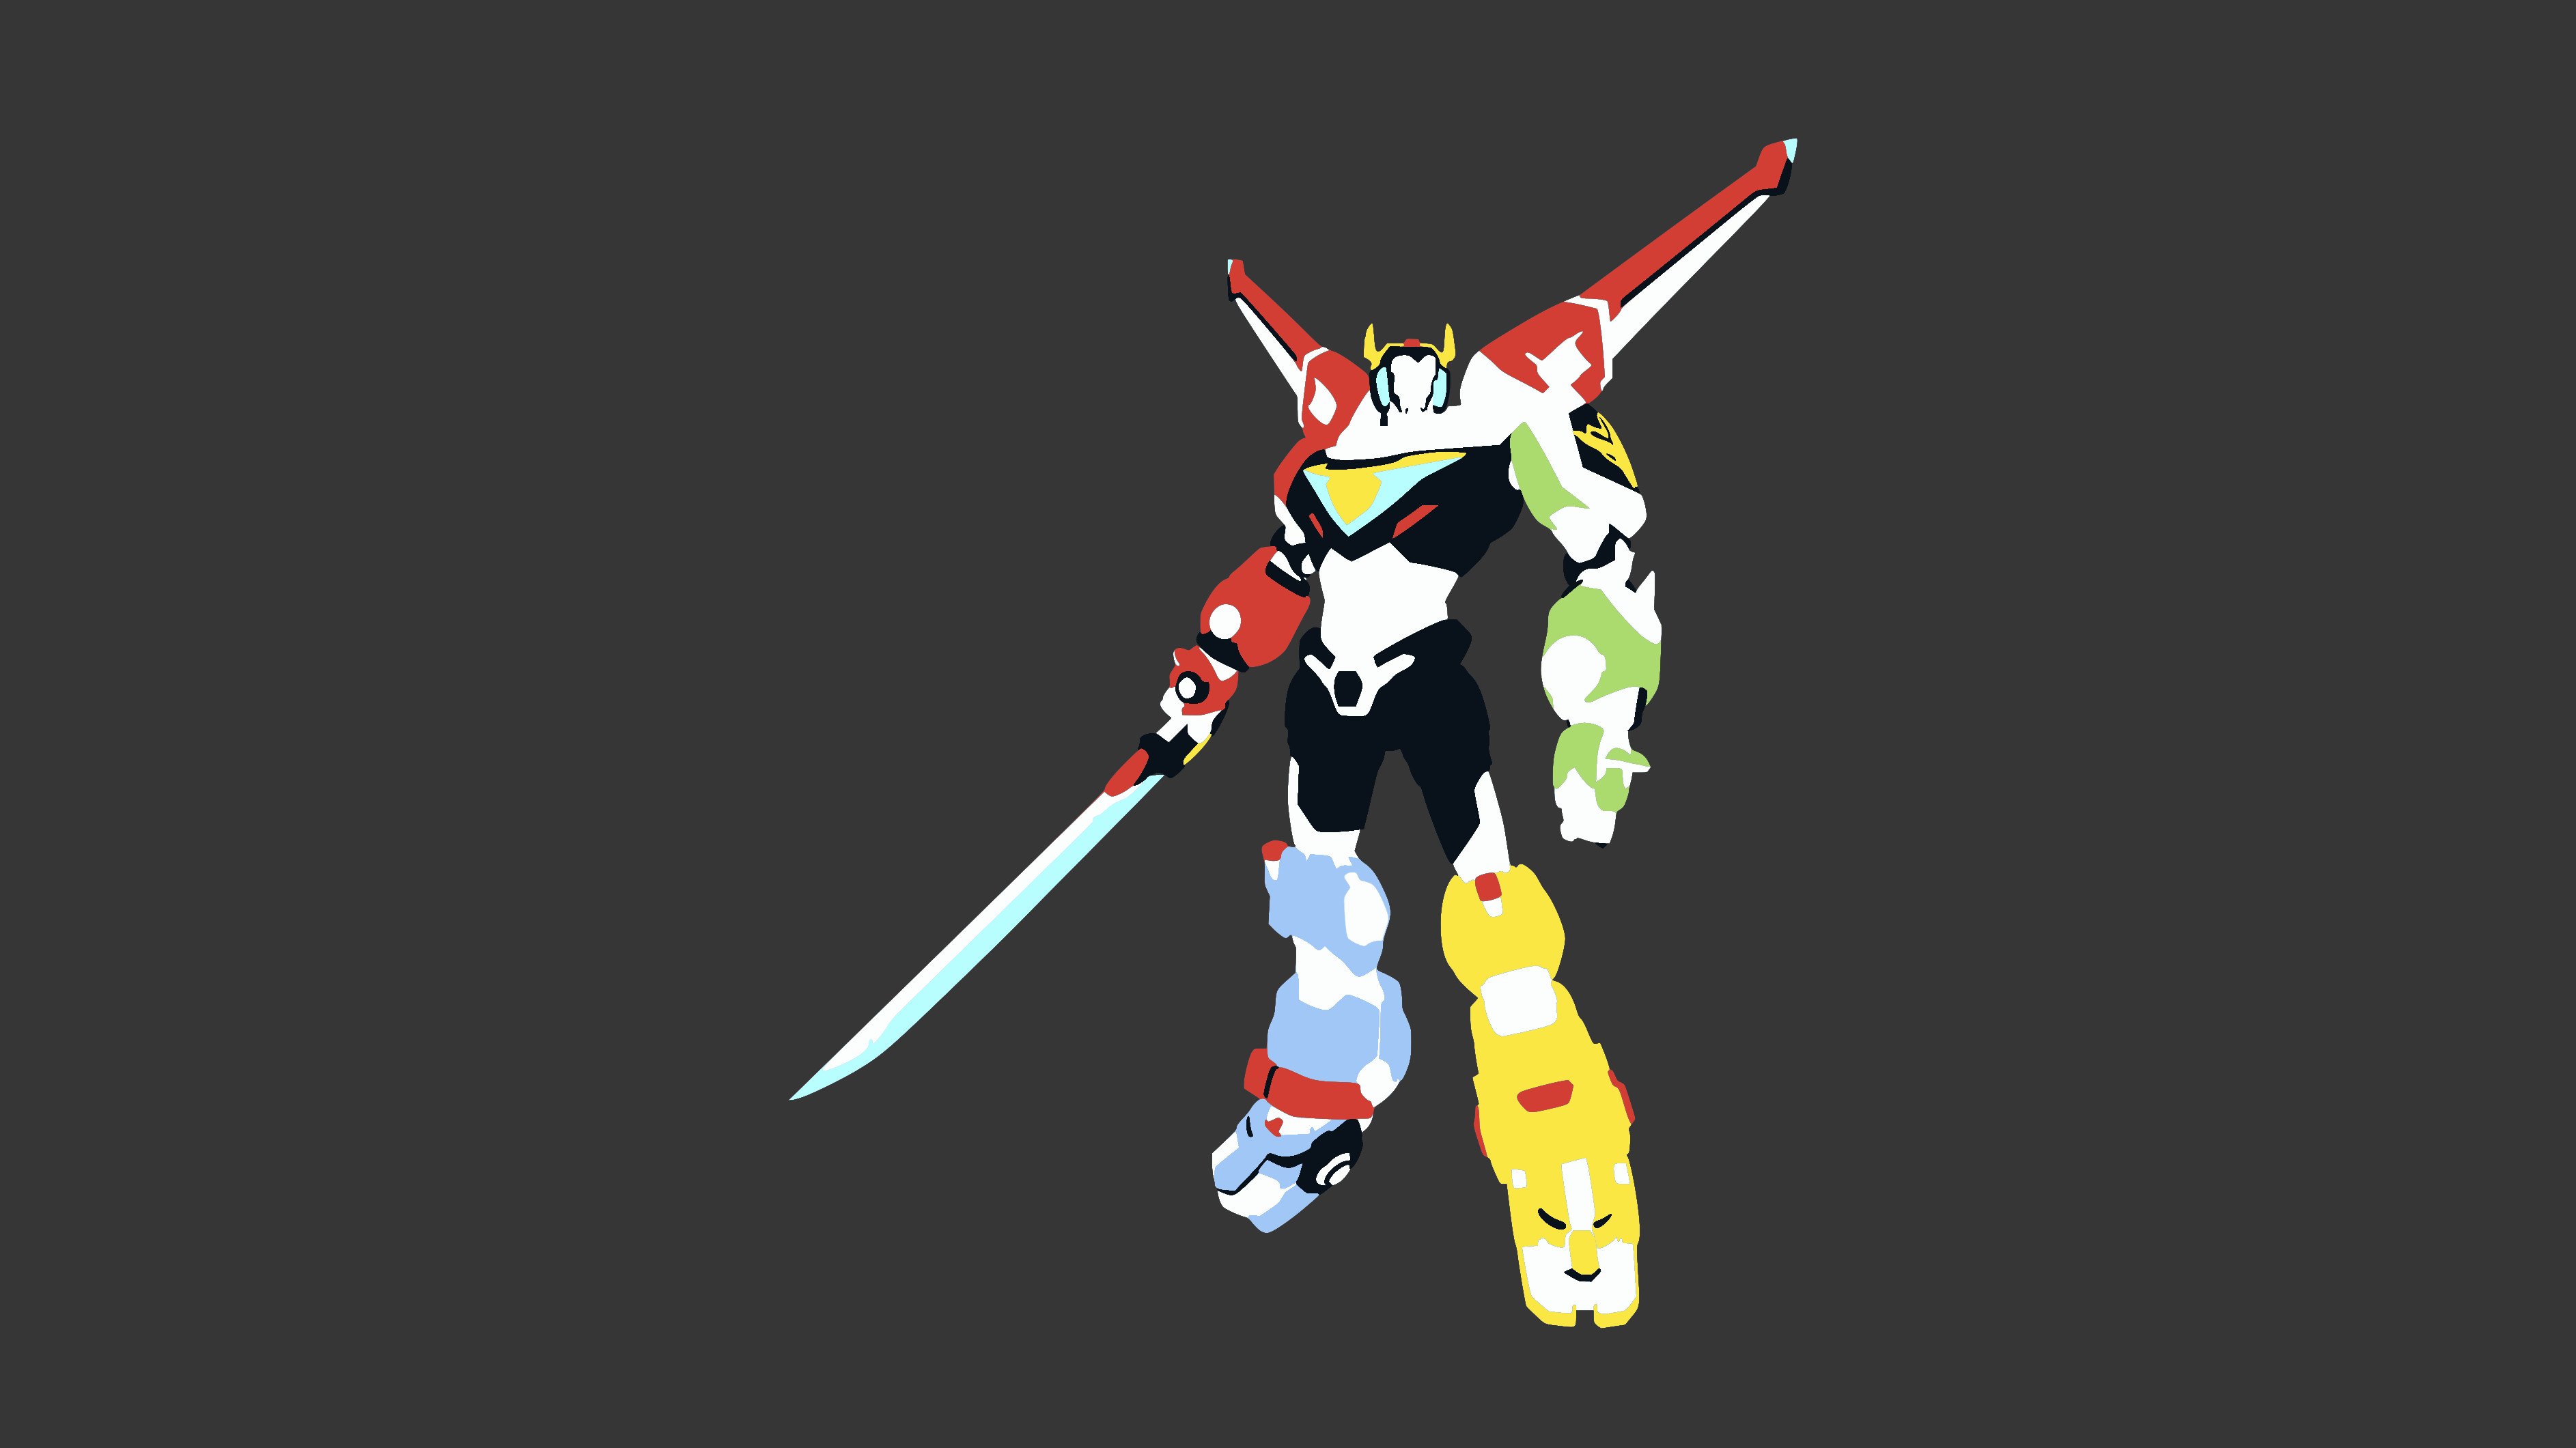 … Voltron Minimalist Wallpaper (Gray Background) by DamionMauville